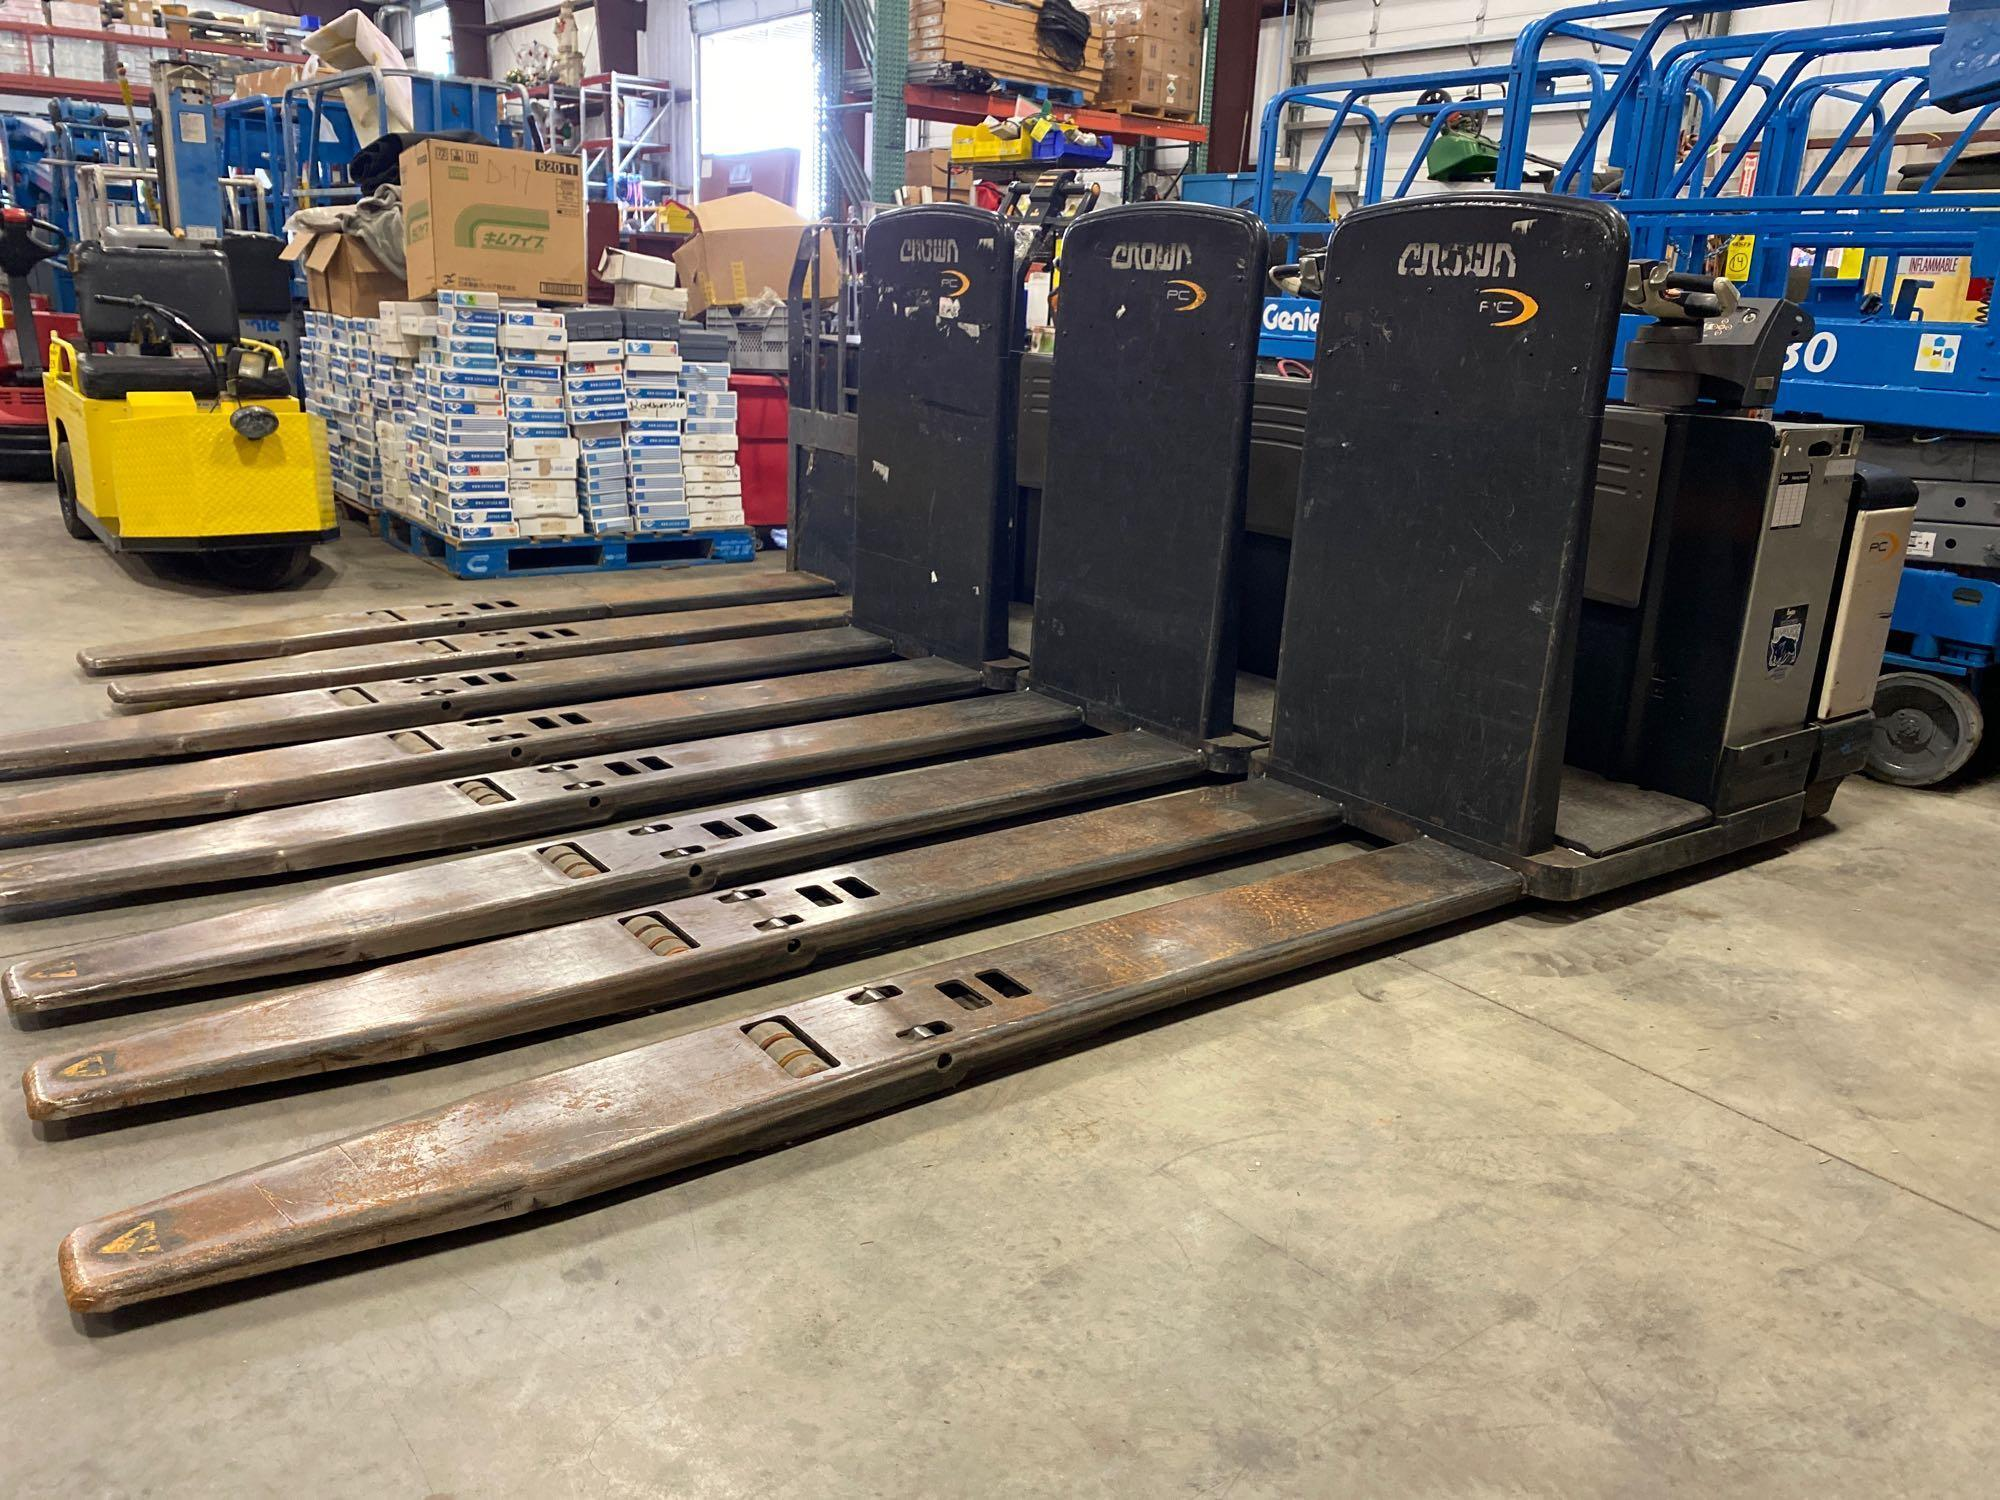 2012 CROWN ELECTRIC PALLET JACK, 8,000 LB CAPACITY, MODEL PC4500-80, 24V, RUNS AND OPERATES - Image 2 of 5